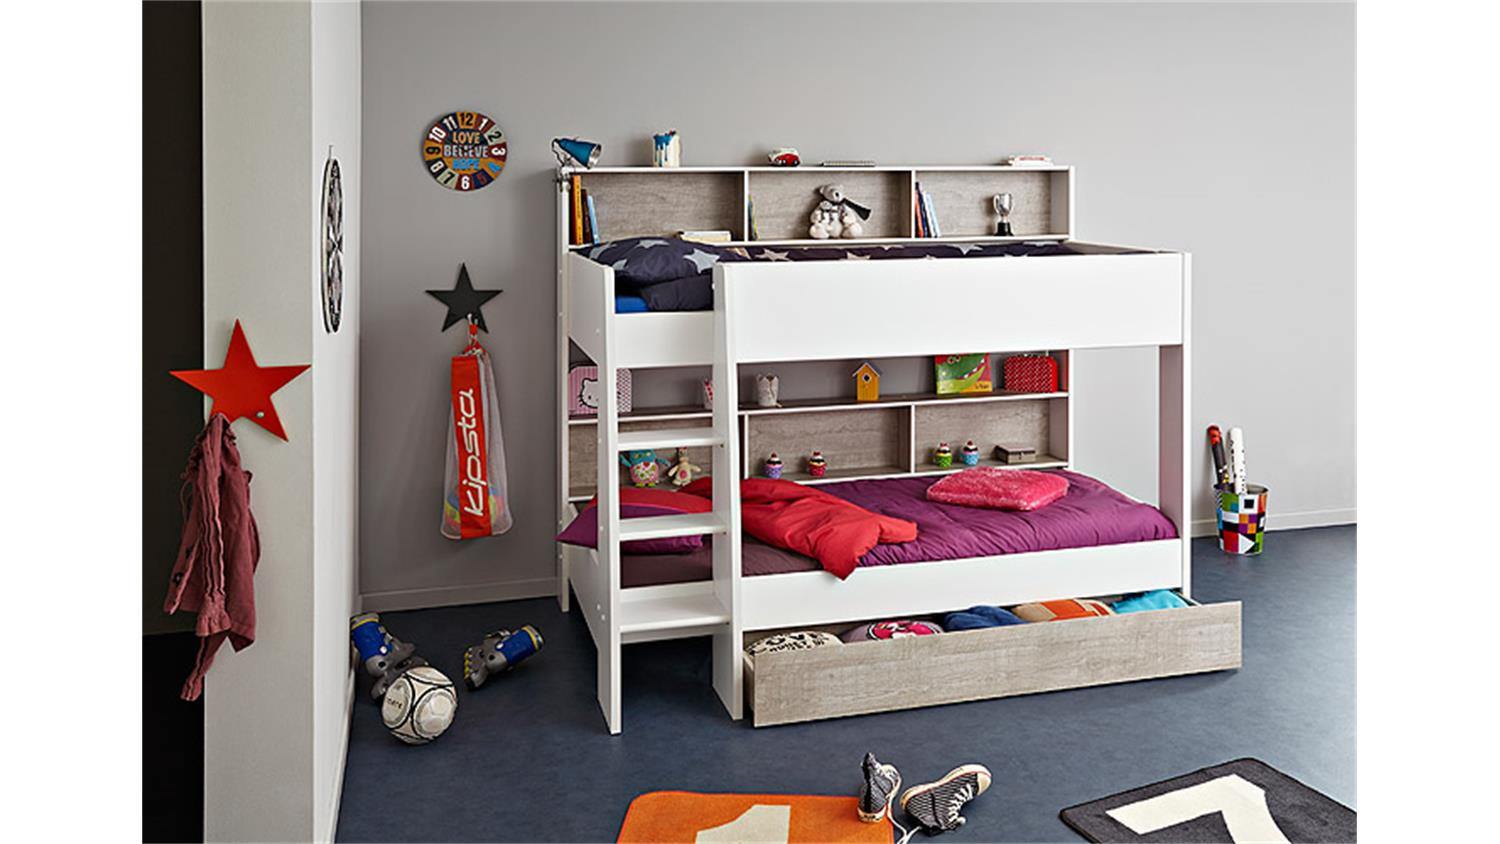 etagenbett taylor 1 hochbett kinderbett in wei und grau loft. Black Bedroom Furniture Sets. Home Design Ideas